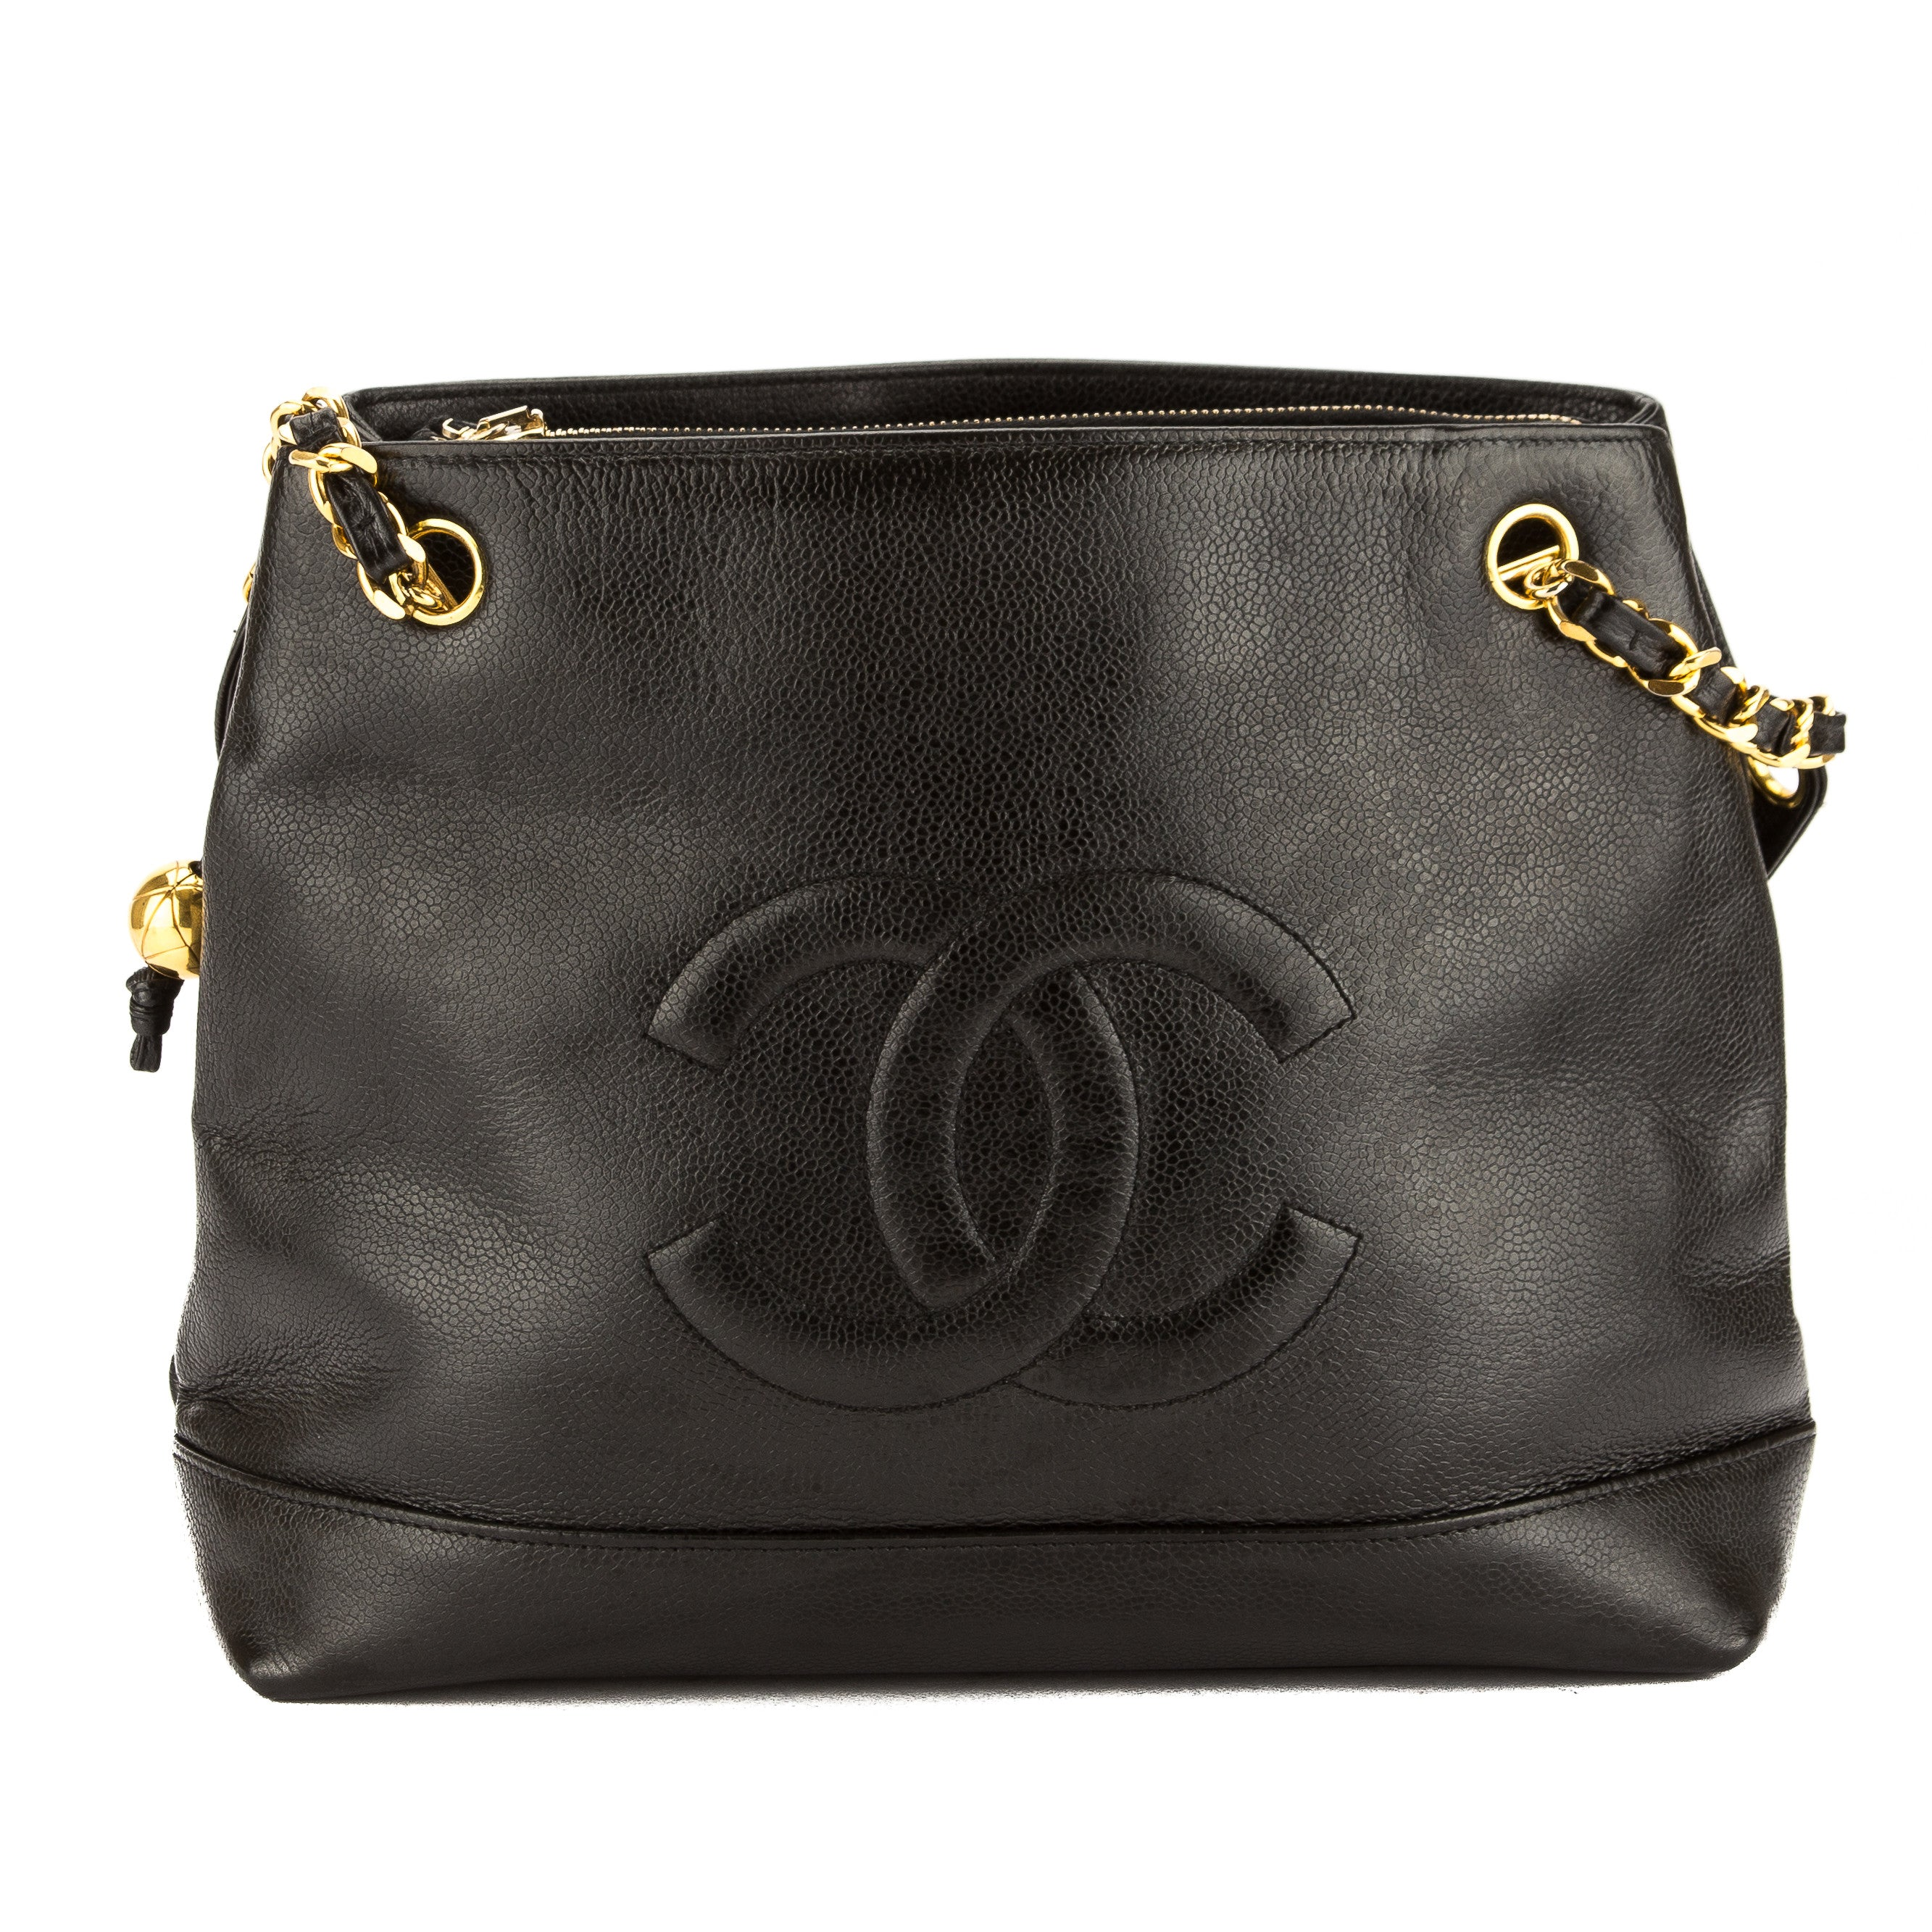 49a481d003c6 Chanel Black Caviar Leather CoCo Mark Chain Shoulder Bag (Pre Owned ...